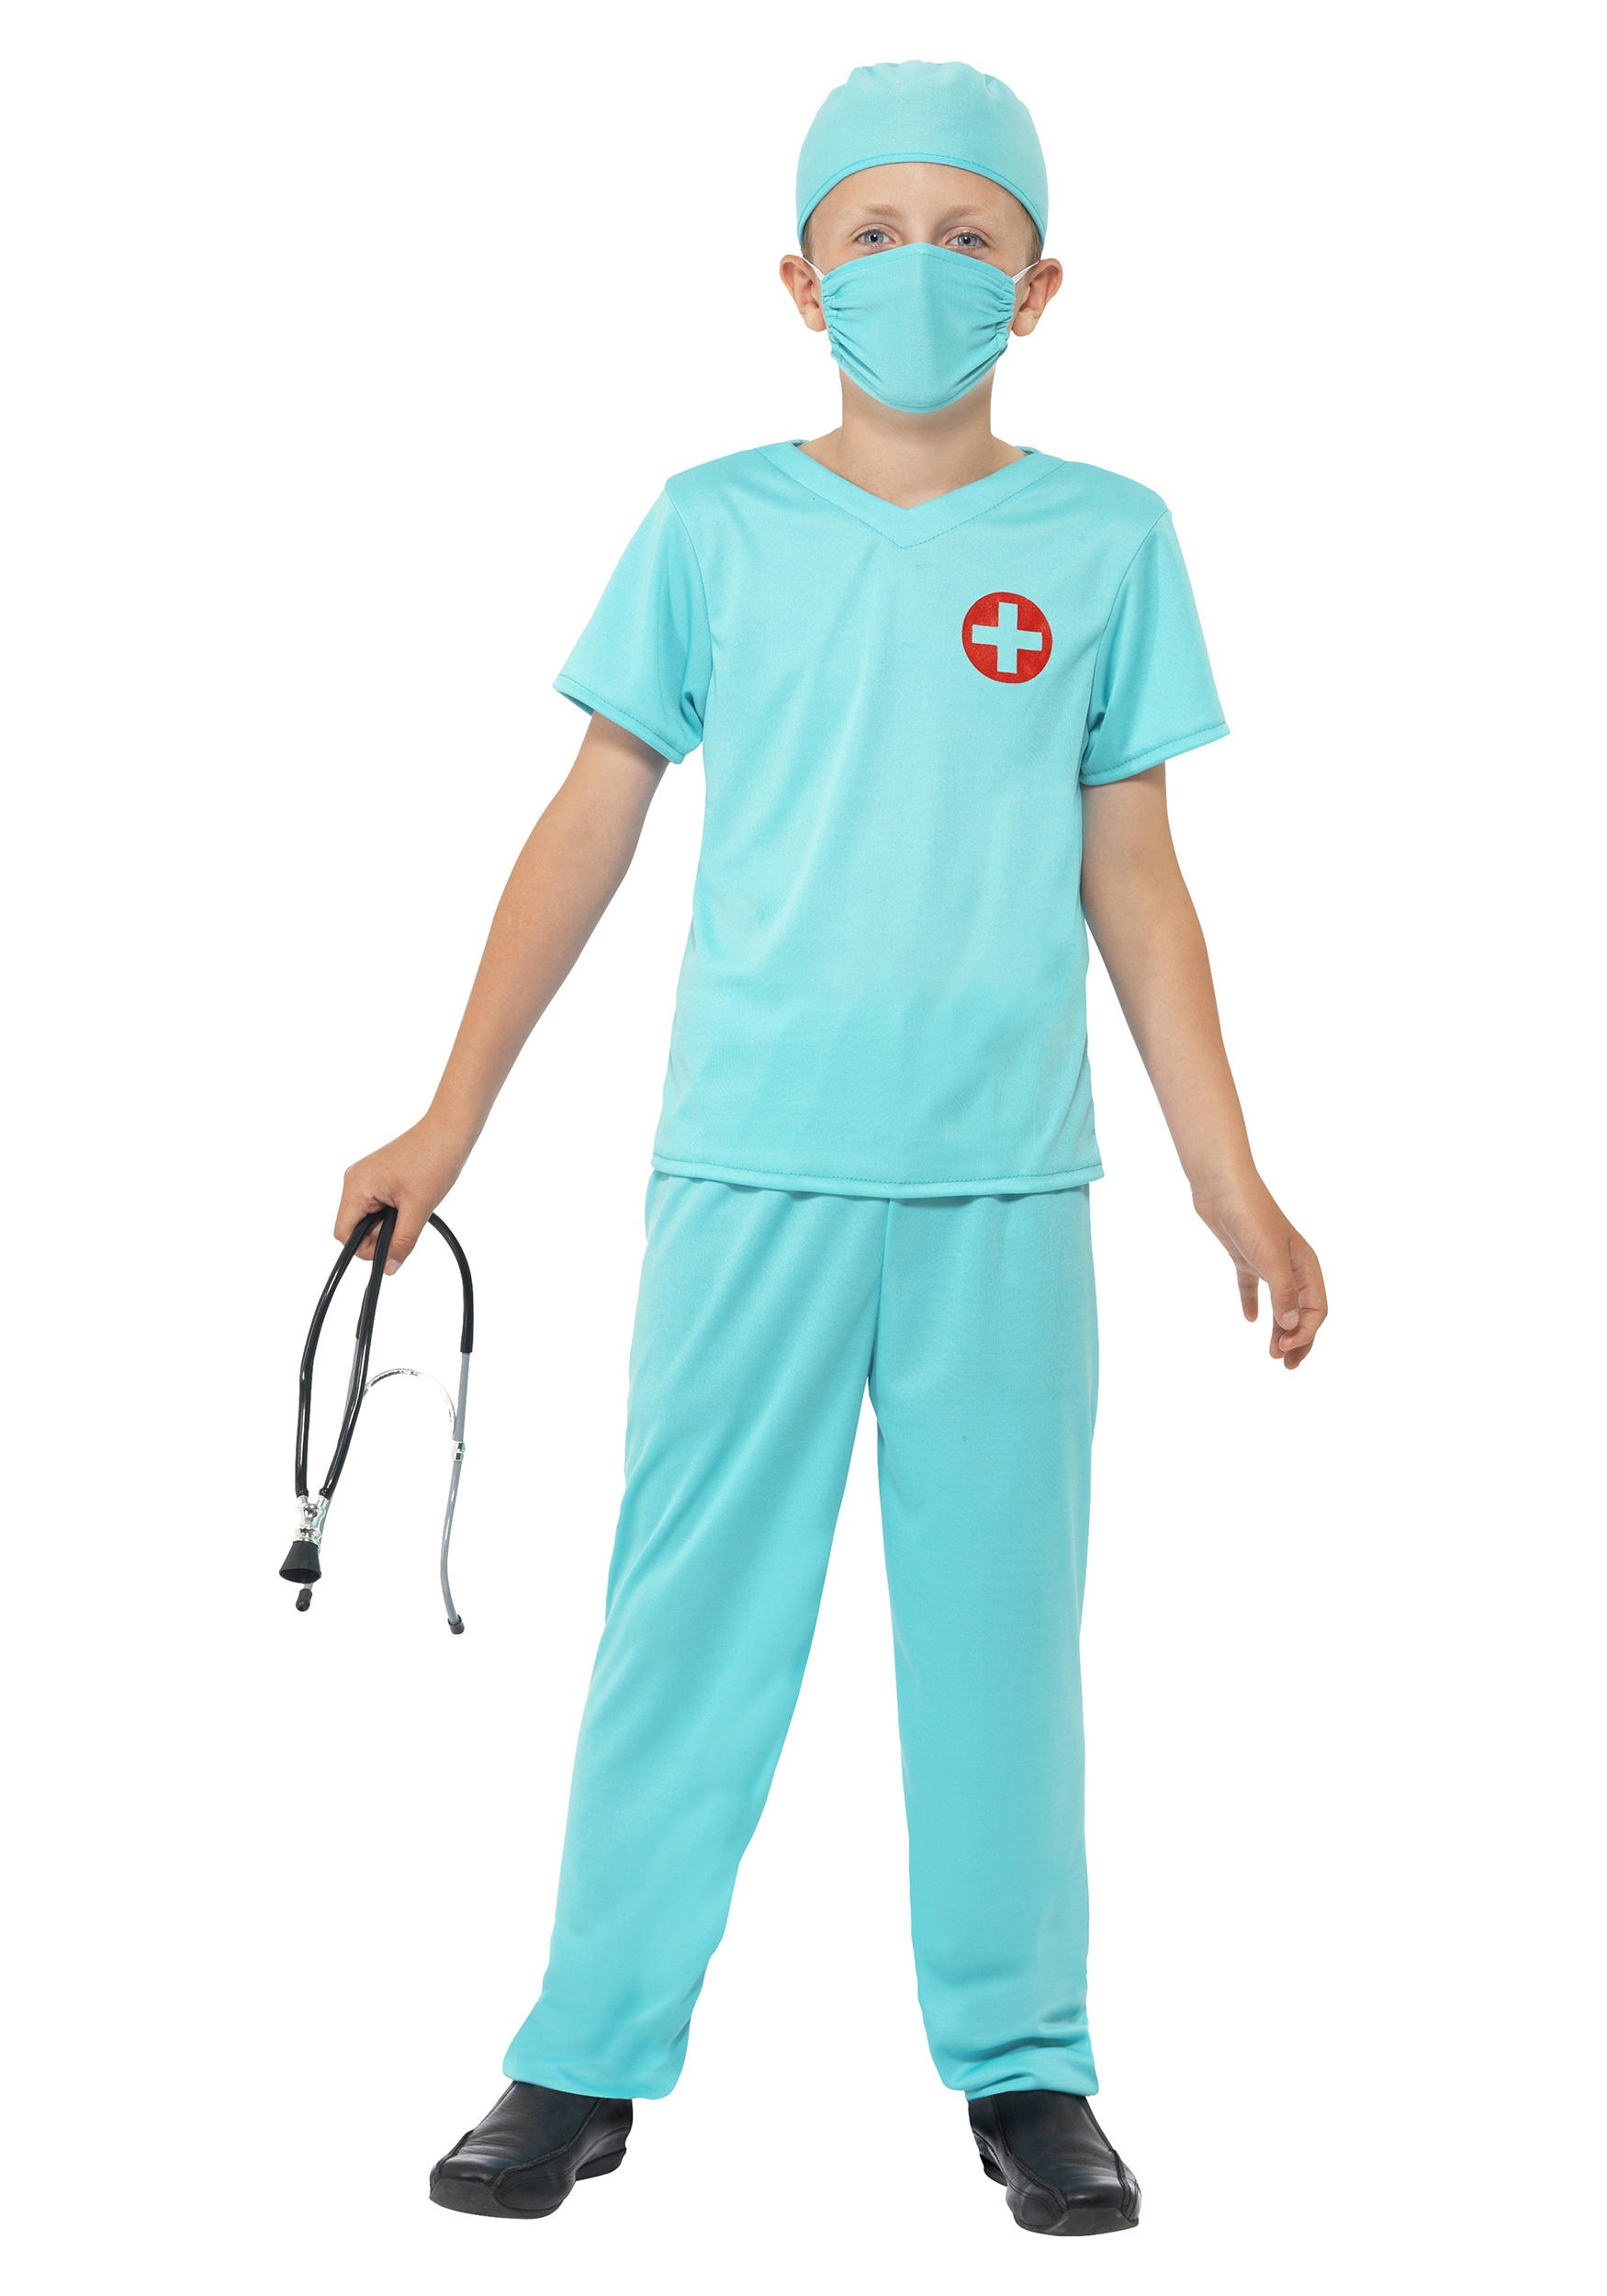 Child Surgeon Costume  sc 1 st  Halloween Costumes & Child Surgeon Costume - Halloween Costumes